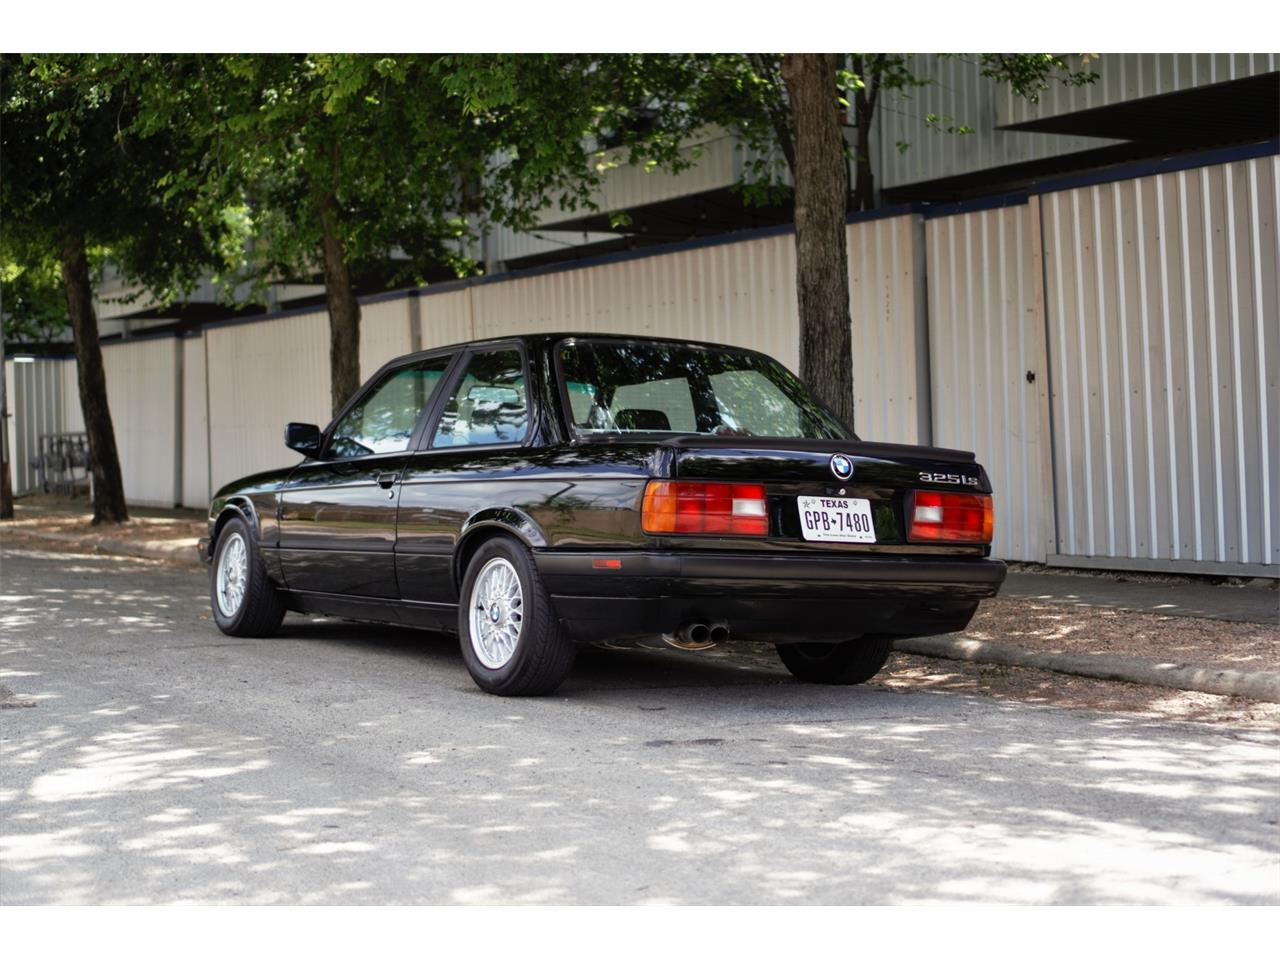 Large Picture of '90 3 Series located in Dallas Texas Auction Vehicle - Q3WA